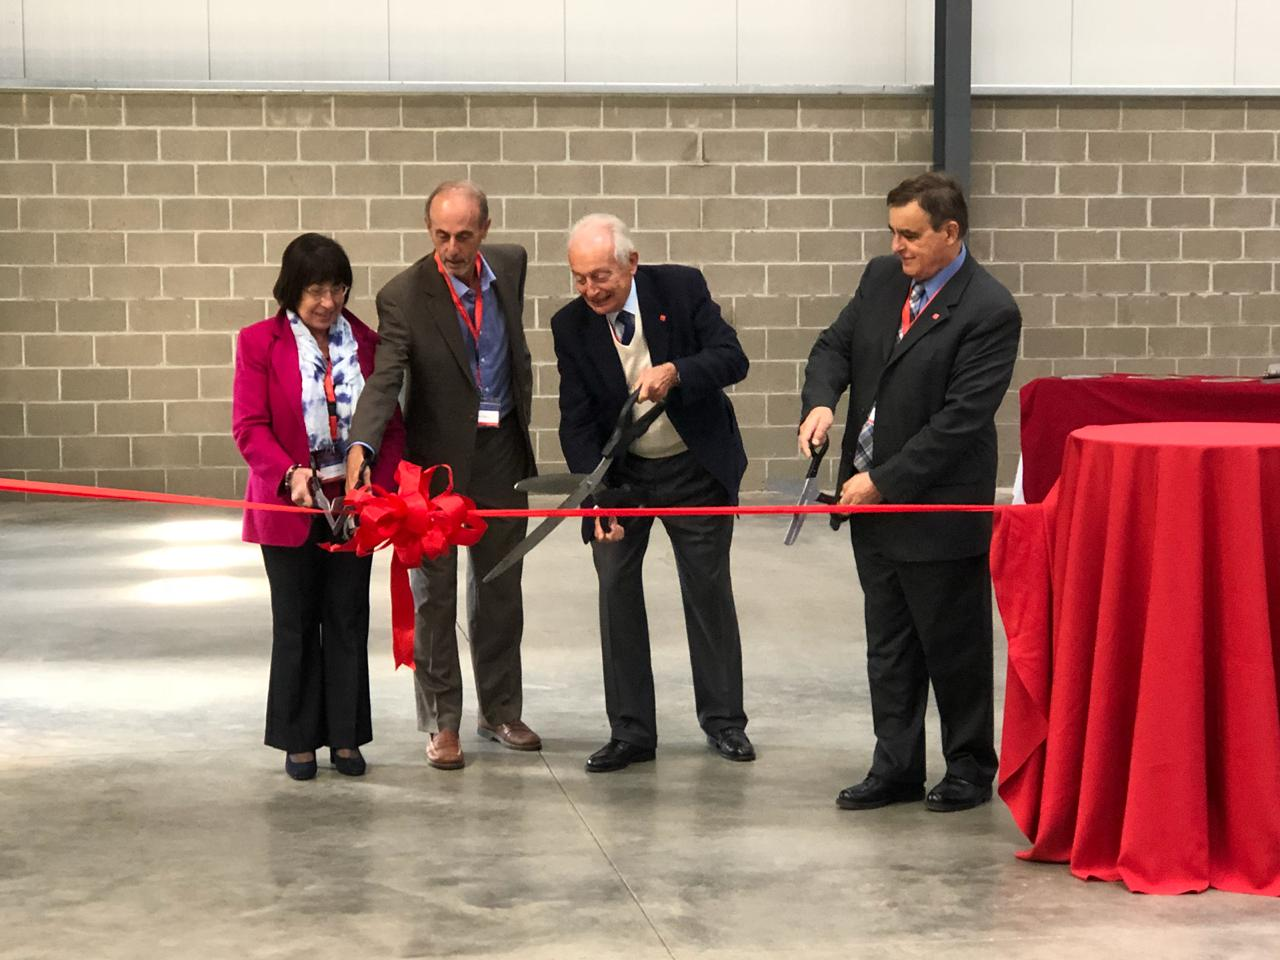 Ribbon-cutting ceremony (f.l.t.r.): Carla Lucente, Honorary Consul of Italy in Western Pennsylvania, Bruce Mazzoni, Cranberry Supervisor, Marco Volpato, President of Cannon, Paolo Spinelli, President of Cannon USA.(Source: Cannon)